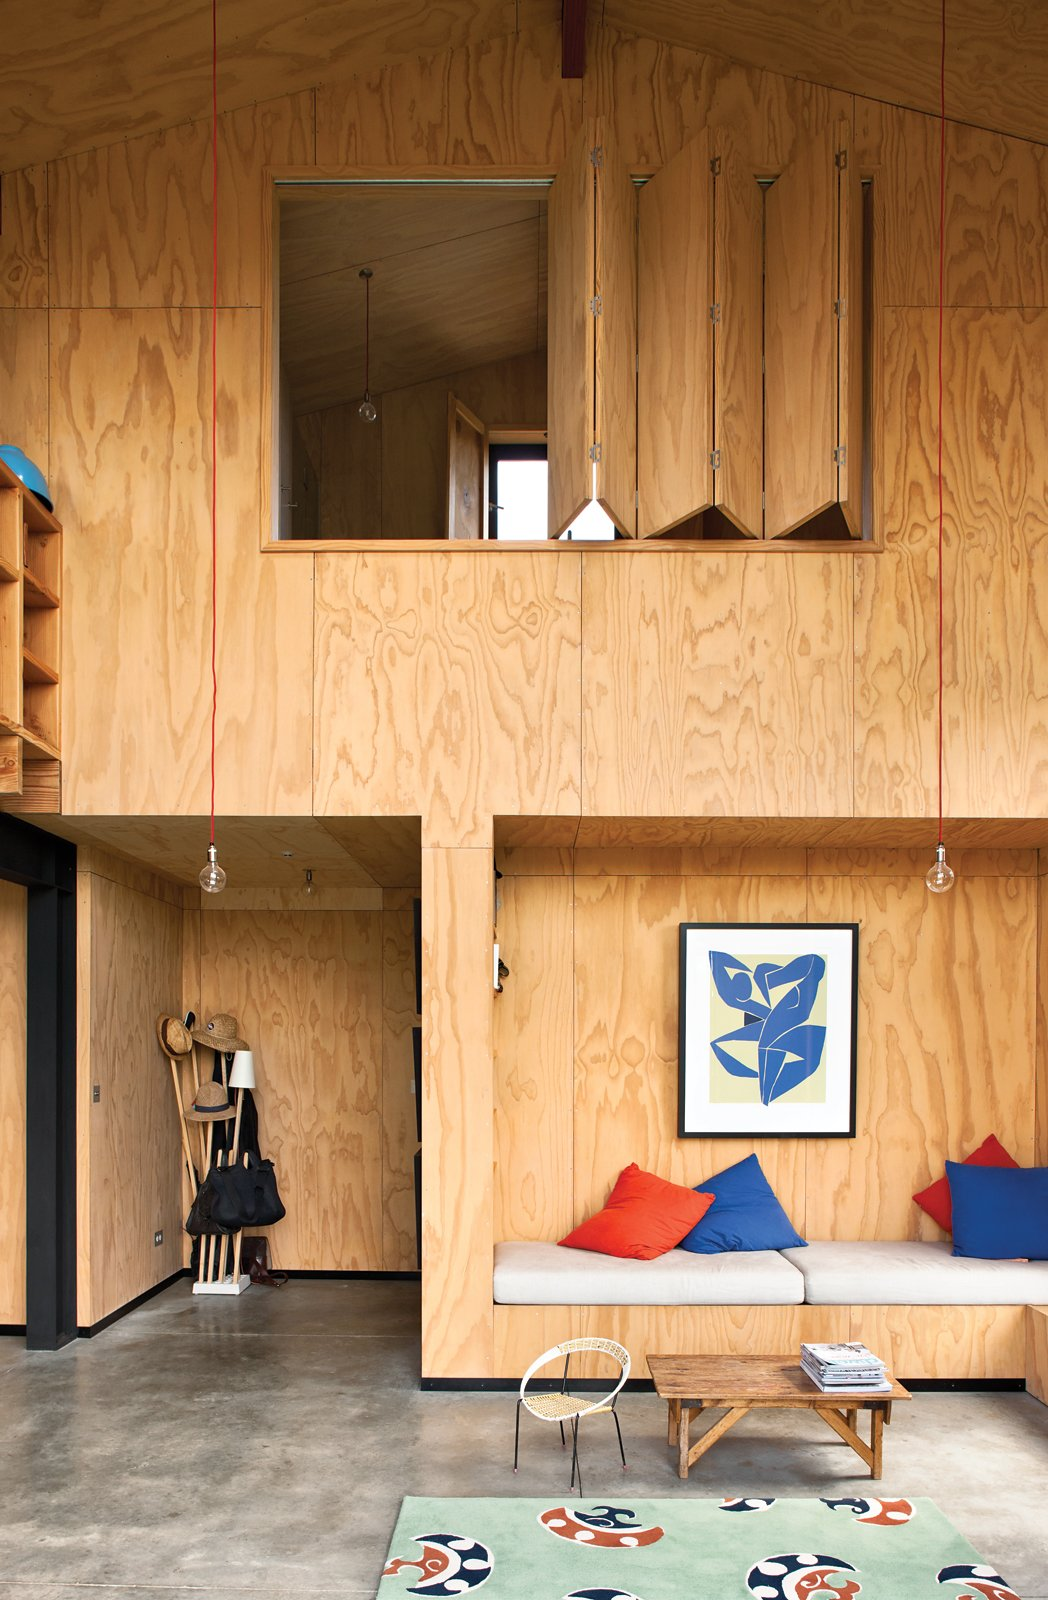 Instead of relying on plasterboard that would be too costly, architect Davor Popadich chose to use plywood to line his New Zealand home's interior. In addition to being cost effective, the plywood highlights the builders' craftsmanship. We think he made the right decision. See more on the Popadich residence here.  100+ Best Modern Seating Designs from Ways to Use Benches